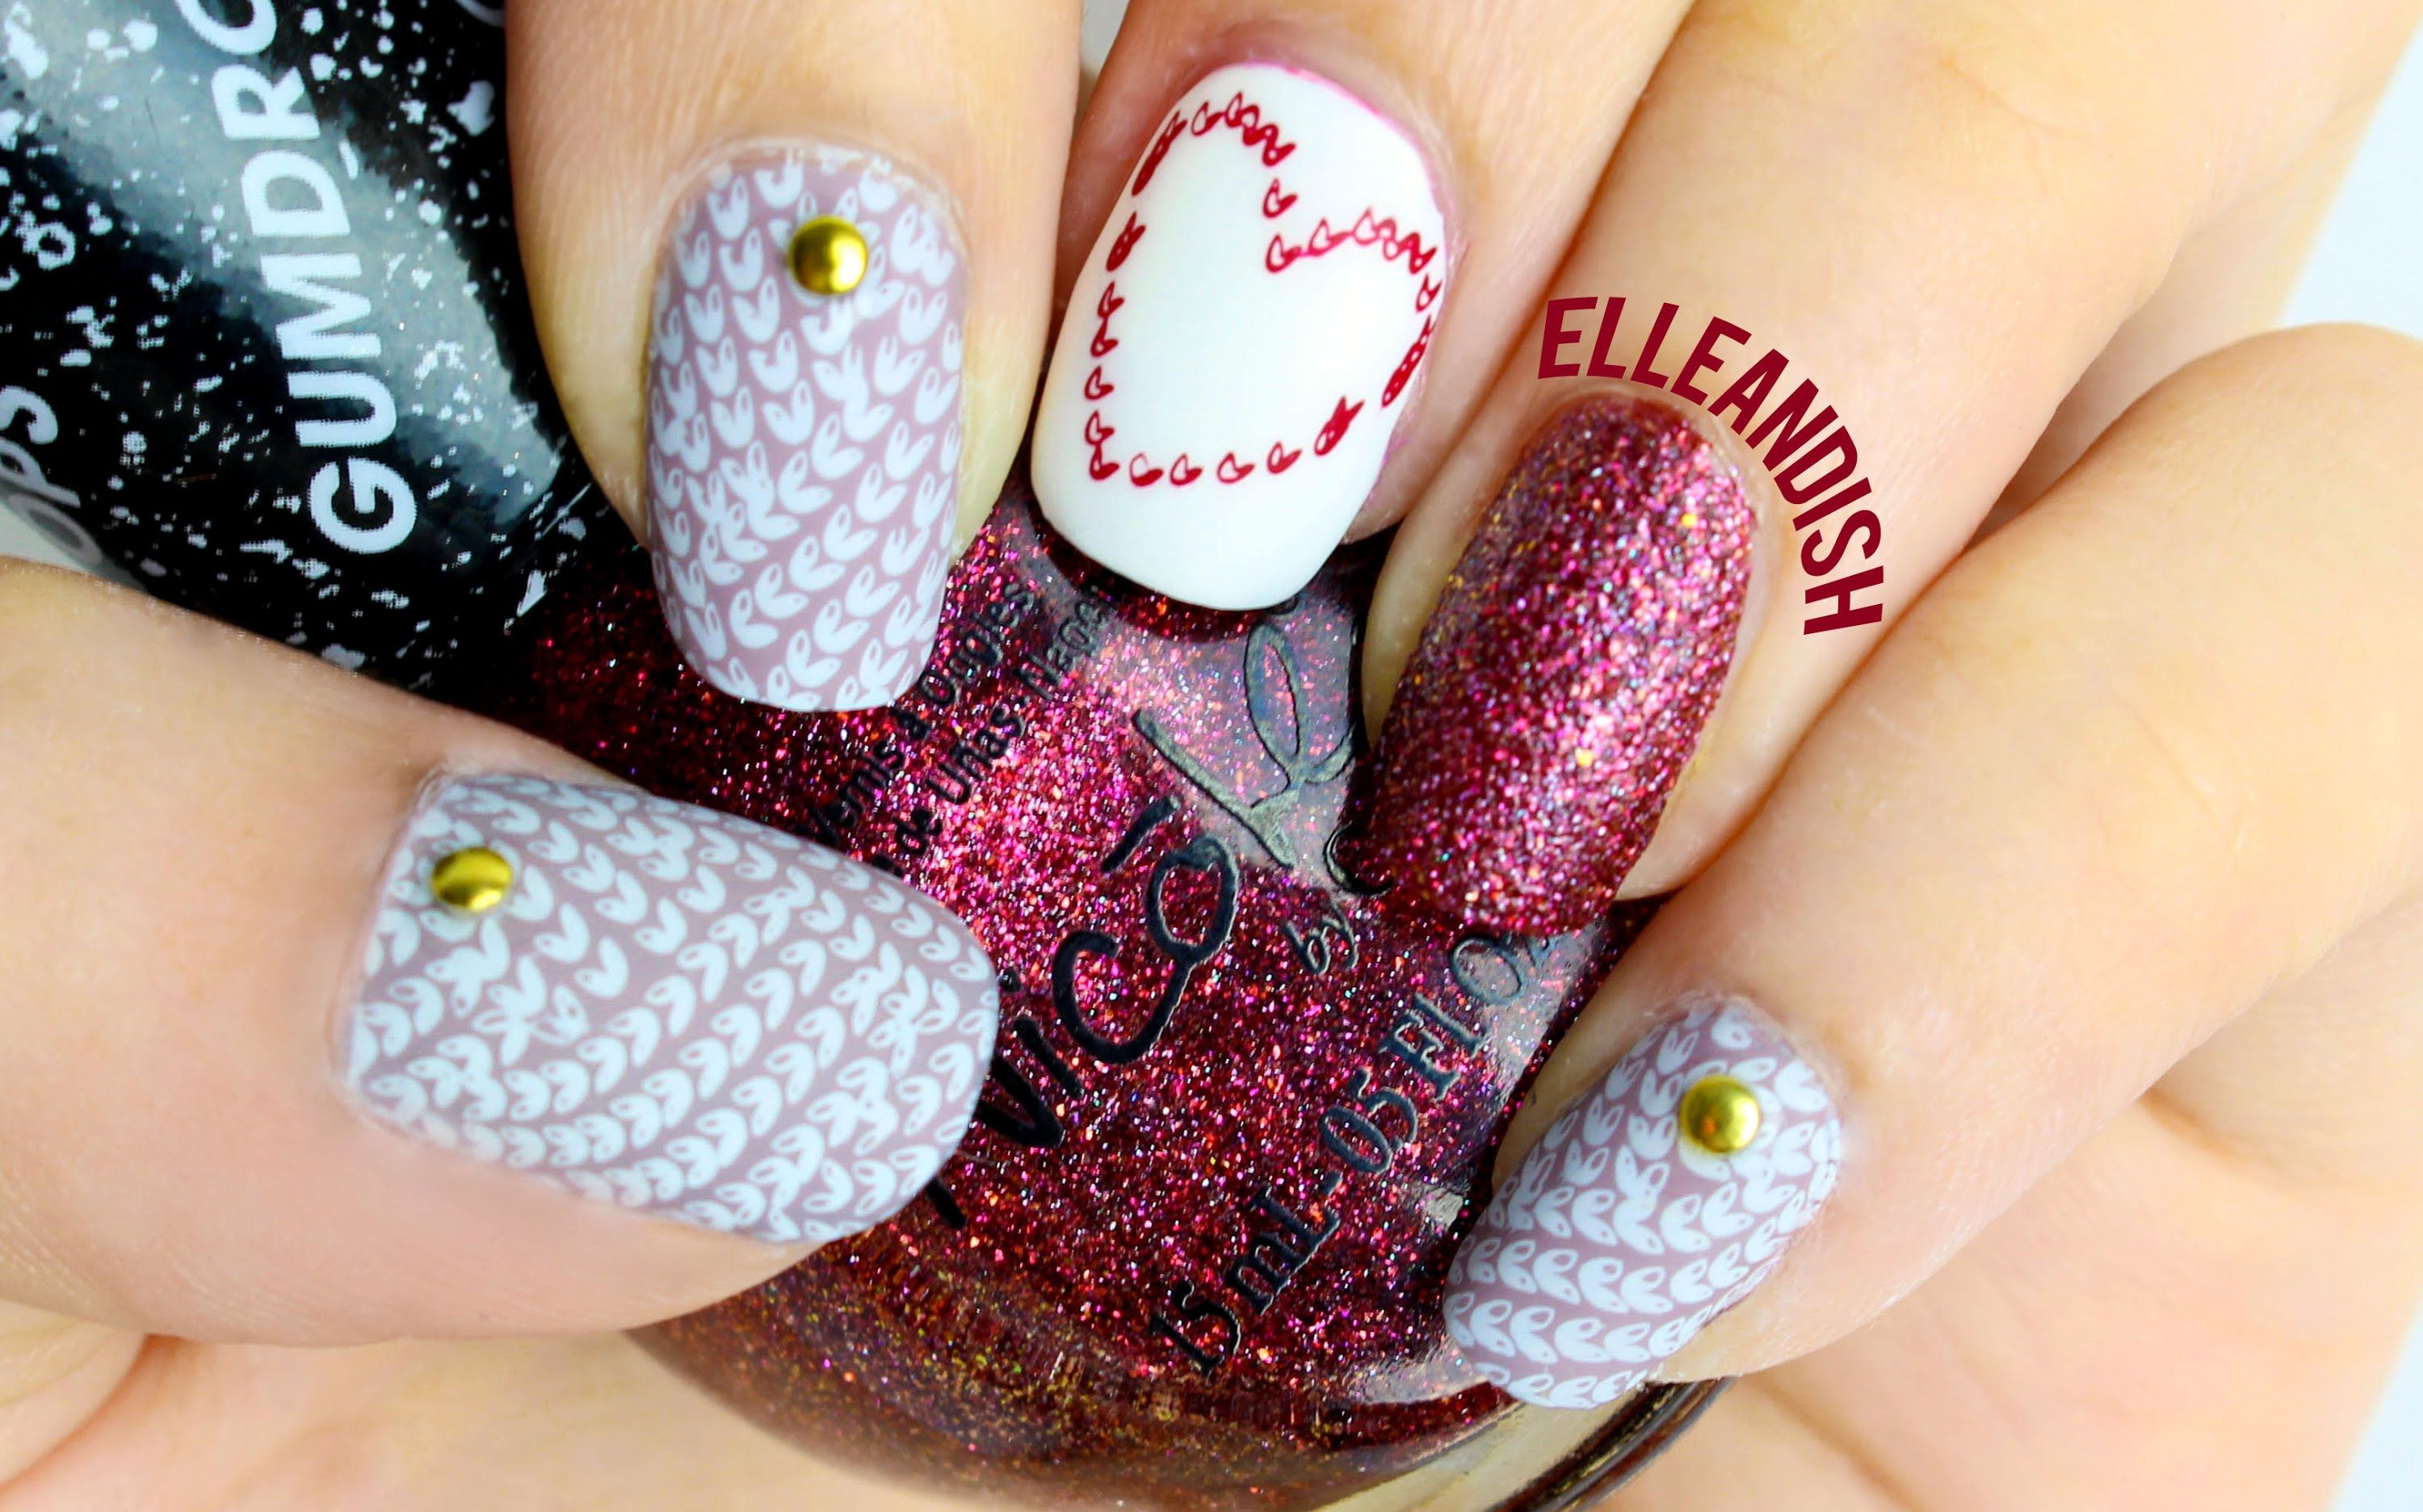 knit sweater nails (stamping) | // n a i l s // | pinterest